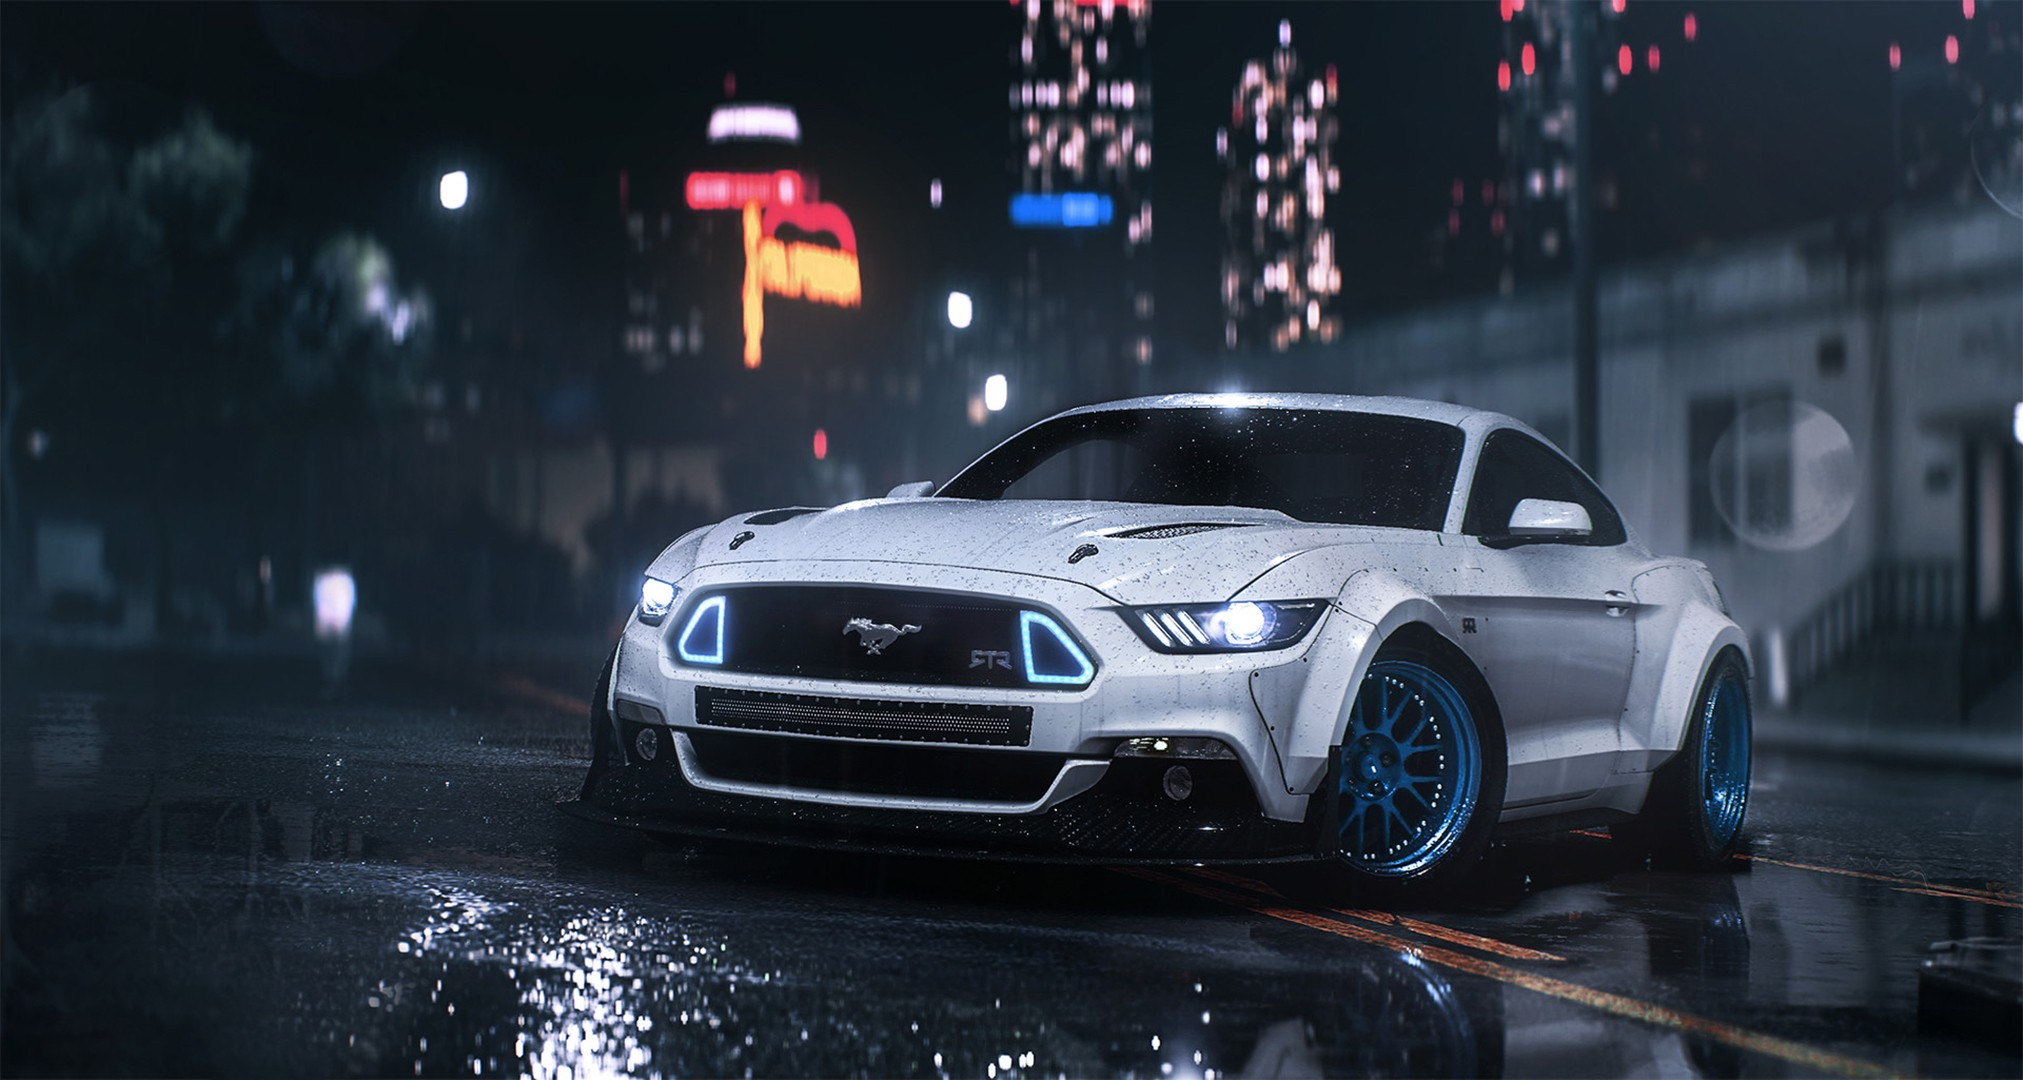 Car Pictures Wallpaper Net Speed Vehicle Car Ford Mustang Need For Speed Wallpapers Hd